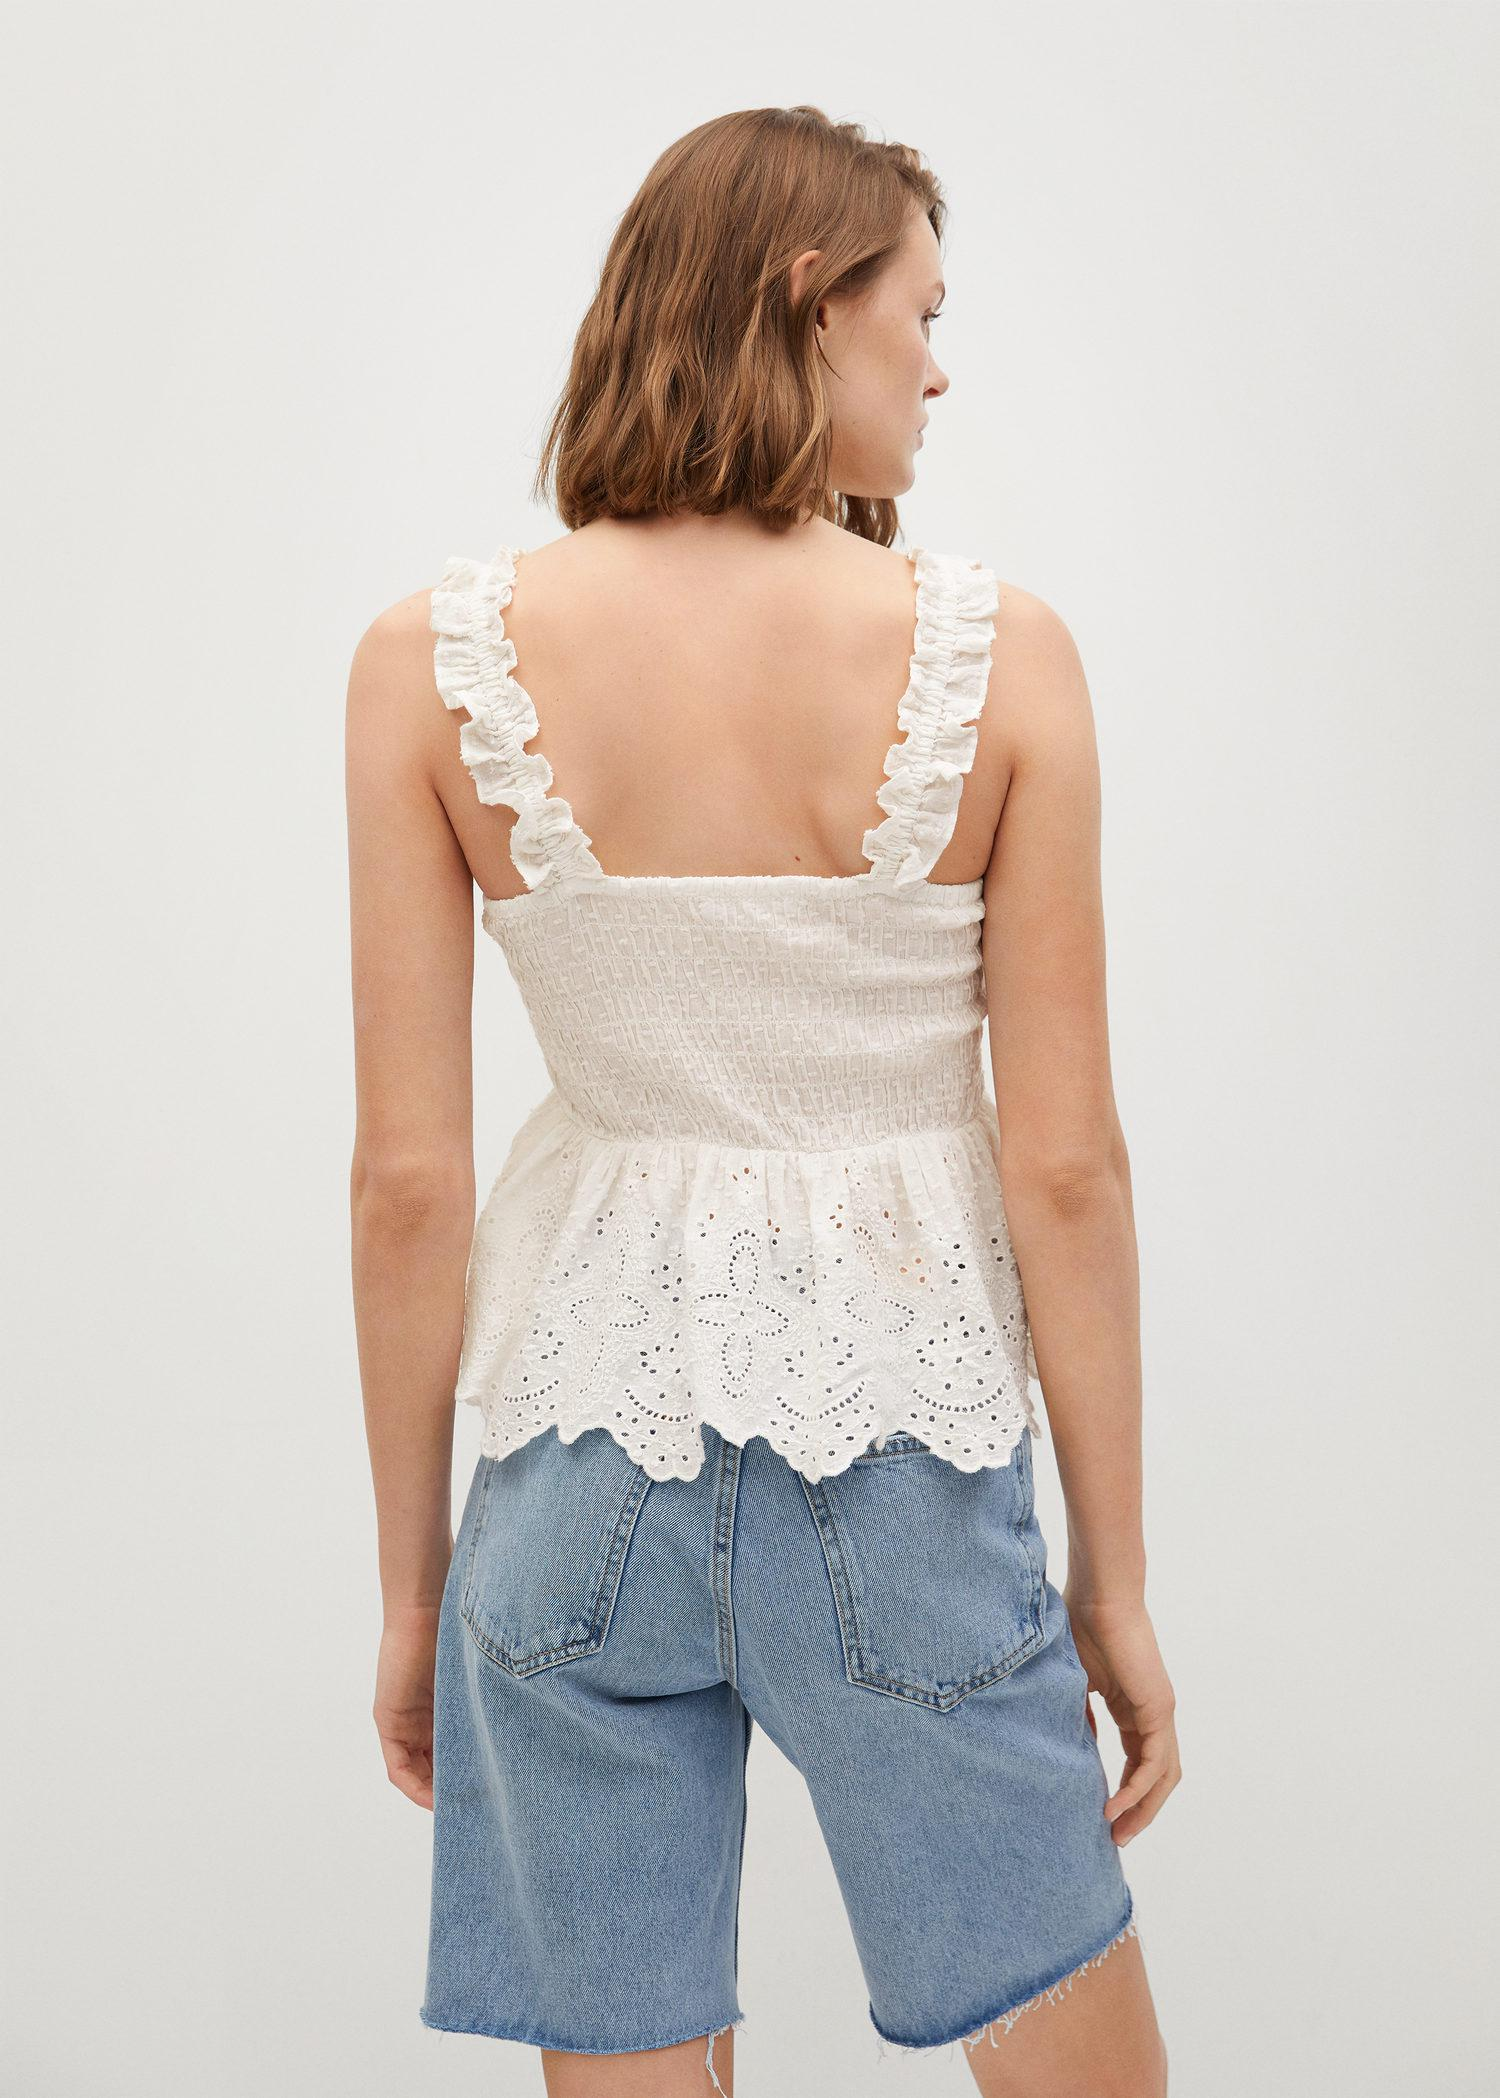 Broderie anglaise panel top 2